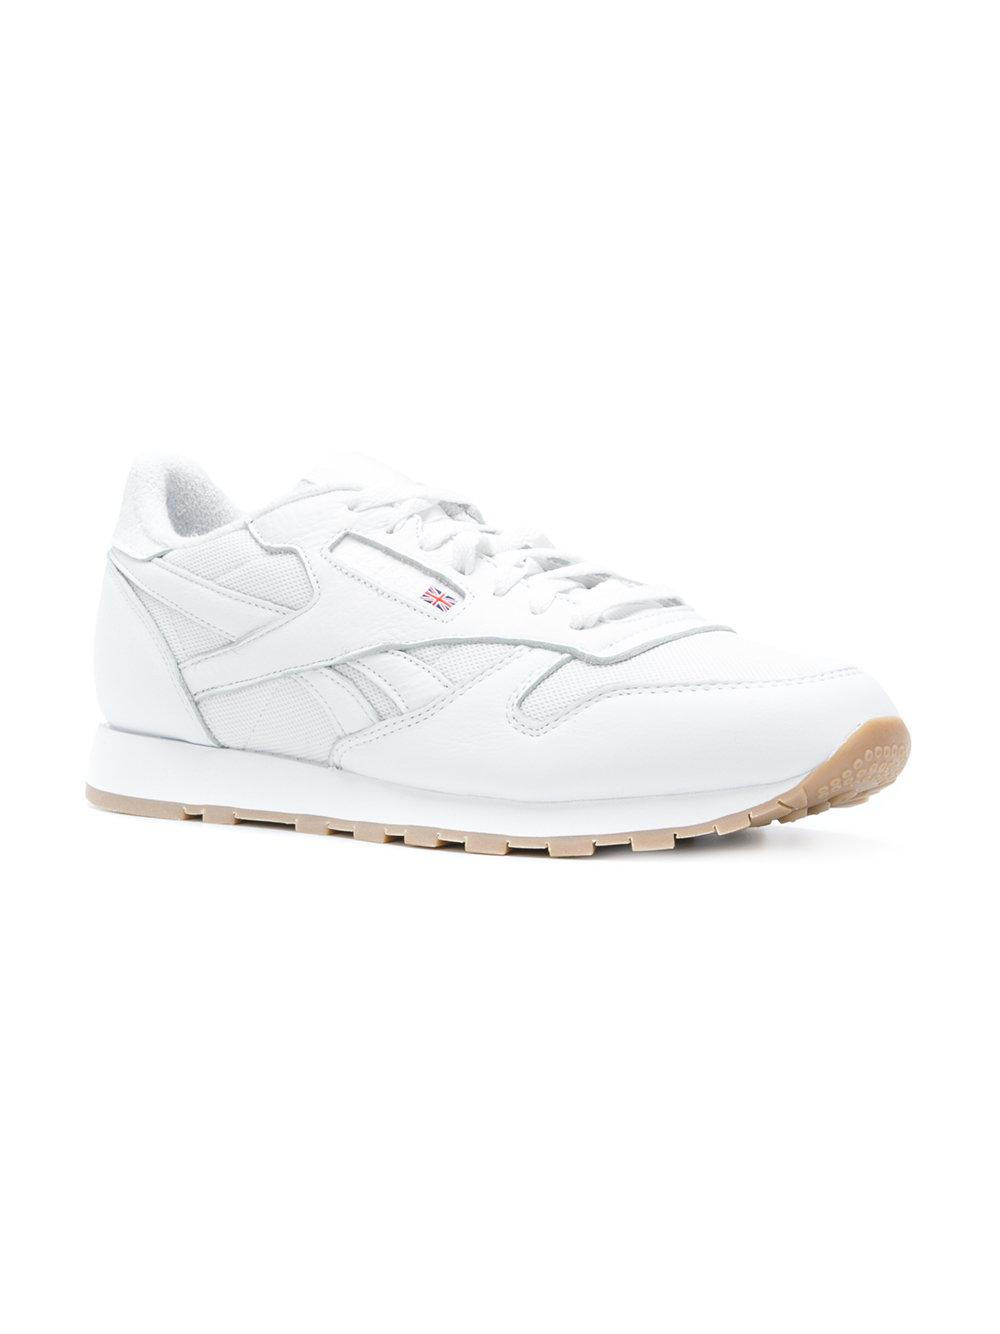 b229ed2a5a74 Lyst - Reebok Low-top Sneakers in White for Men